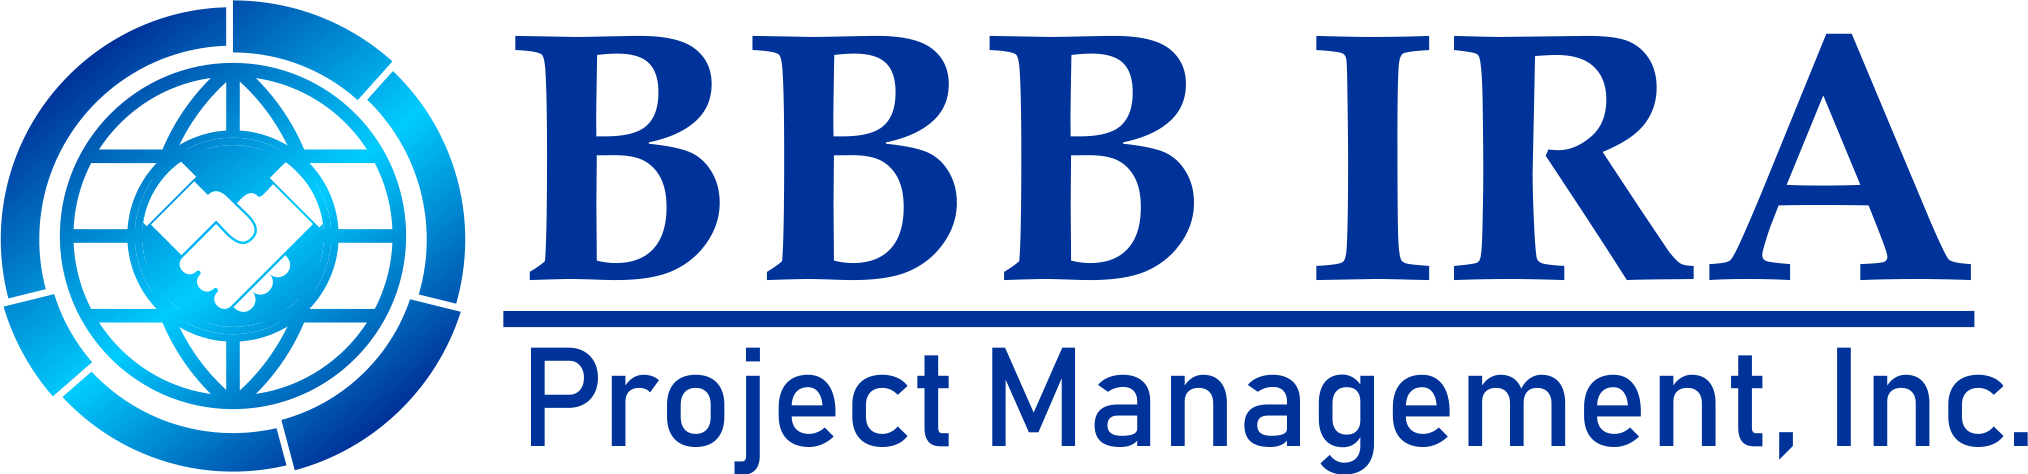 BBB IRA Project Management Inc.